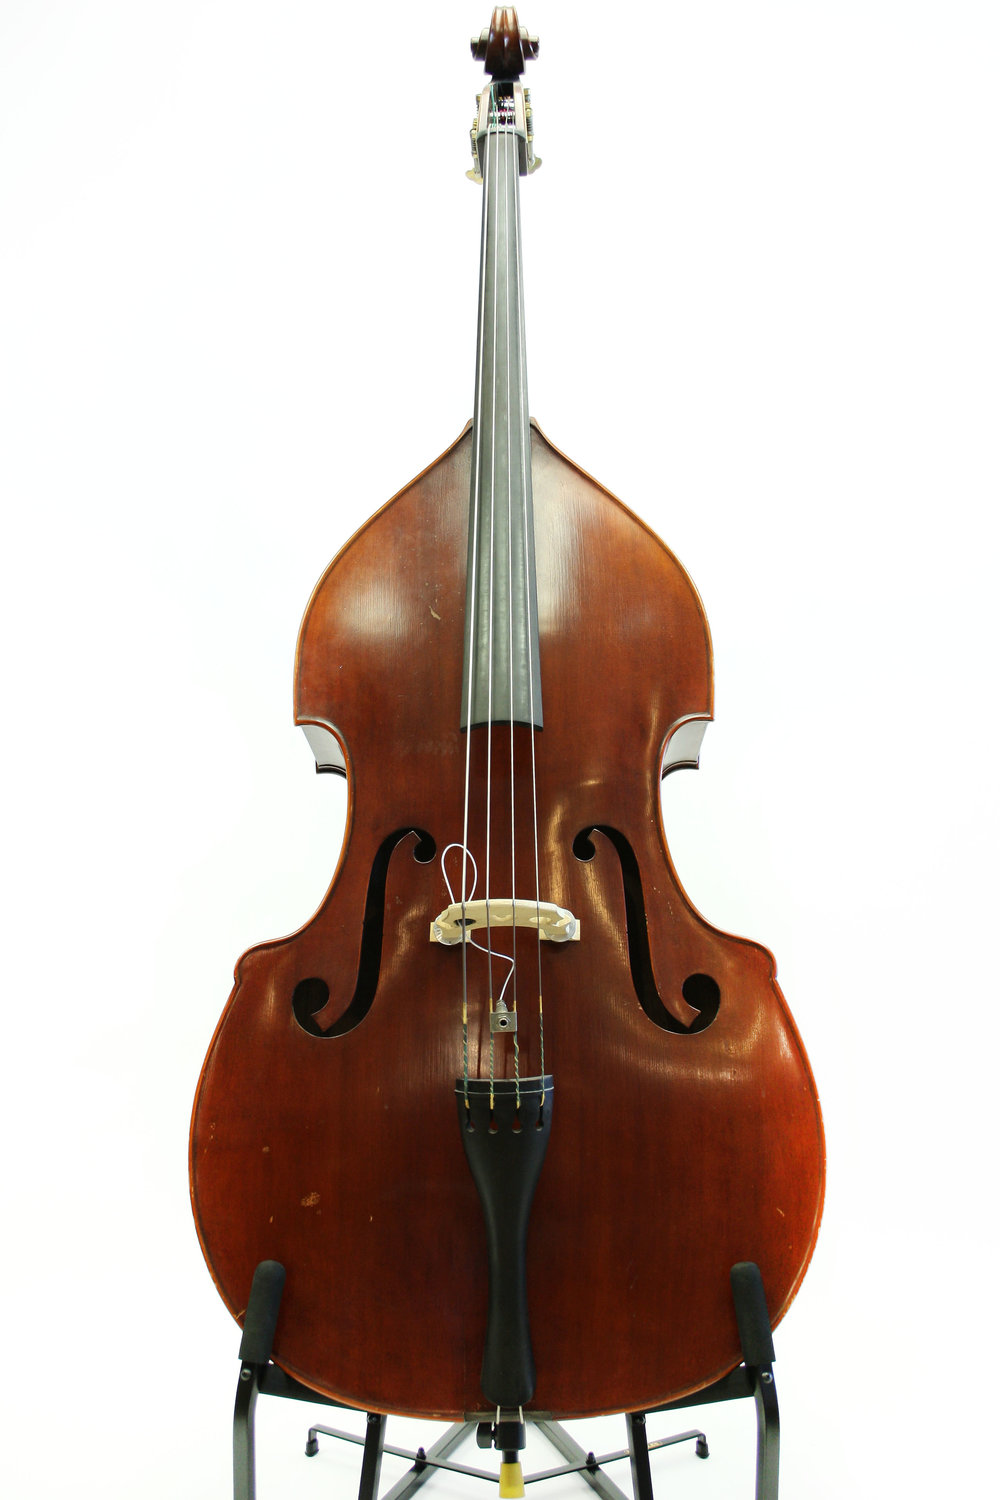 Unlabeled Busetto Carved Bass - $2599